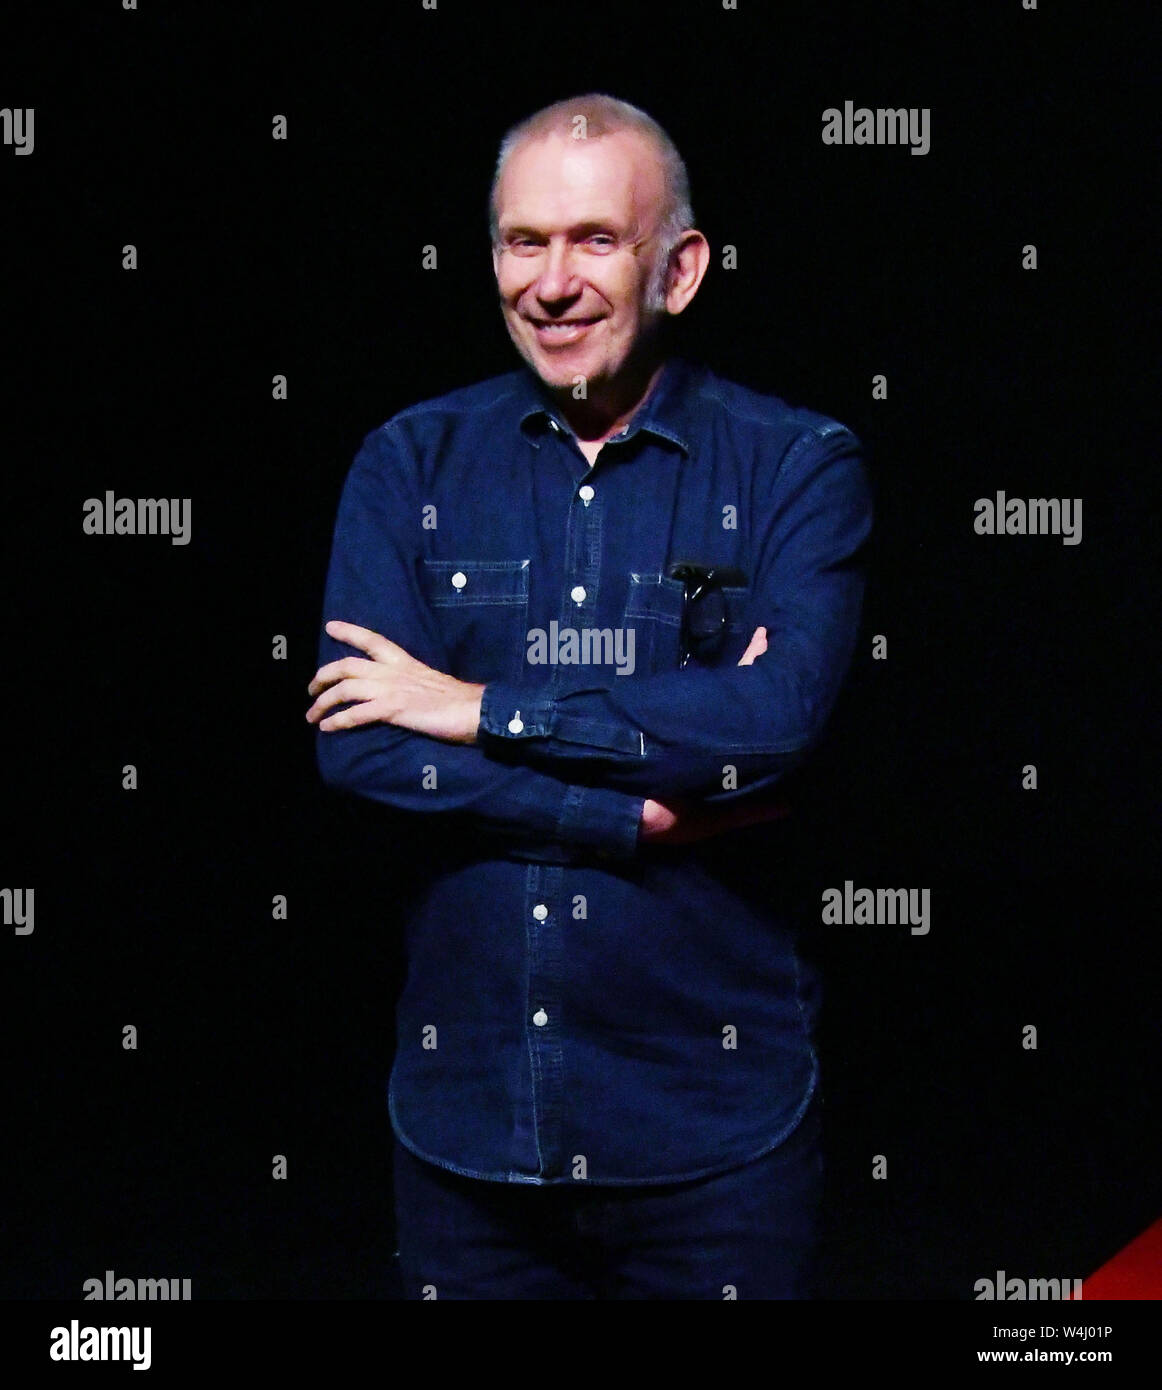 London Uk 23rd July 2019 Jean Paul Gaultier Flamboyant Fashion Designer Stages Production Somewhere Between A Revue And A Fashion Show Based On His Life Story Capturing Key Moments Including His Time